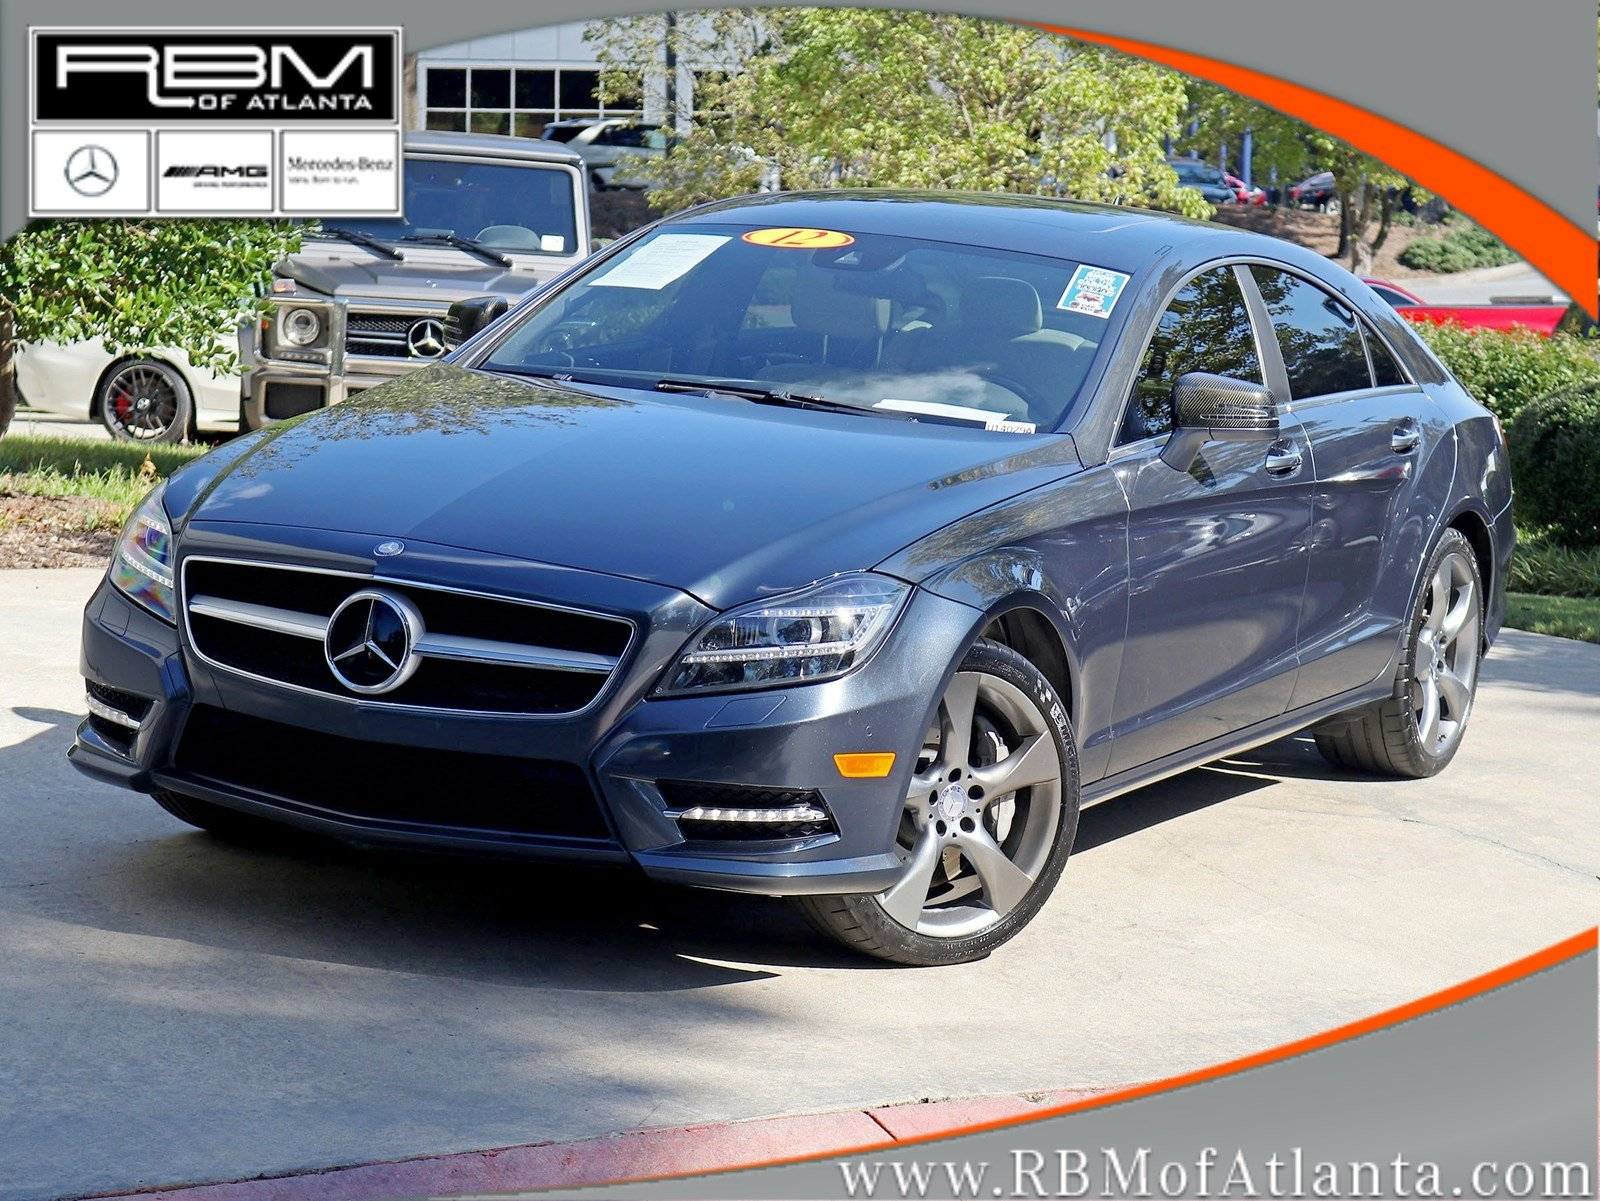 Perfect Pre Owned 2012 Mercedes Benz CLS CLS 550 4MATIC® Coupe